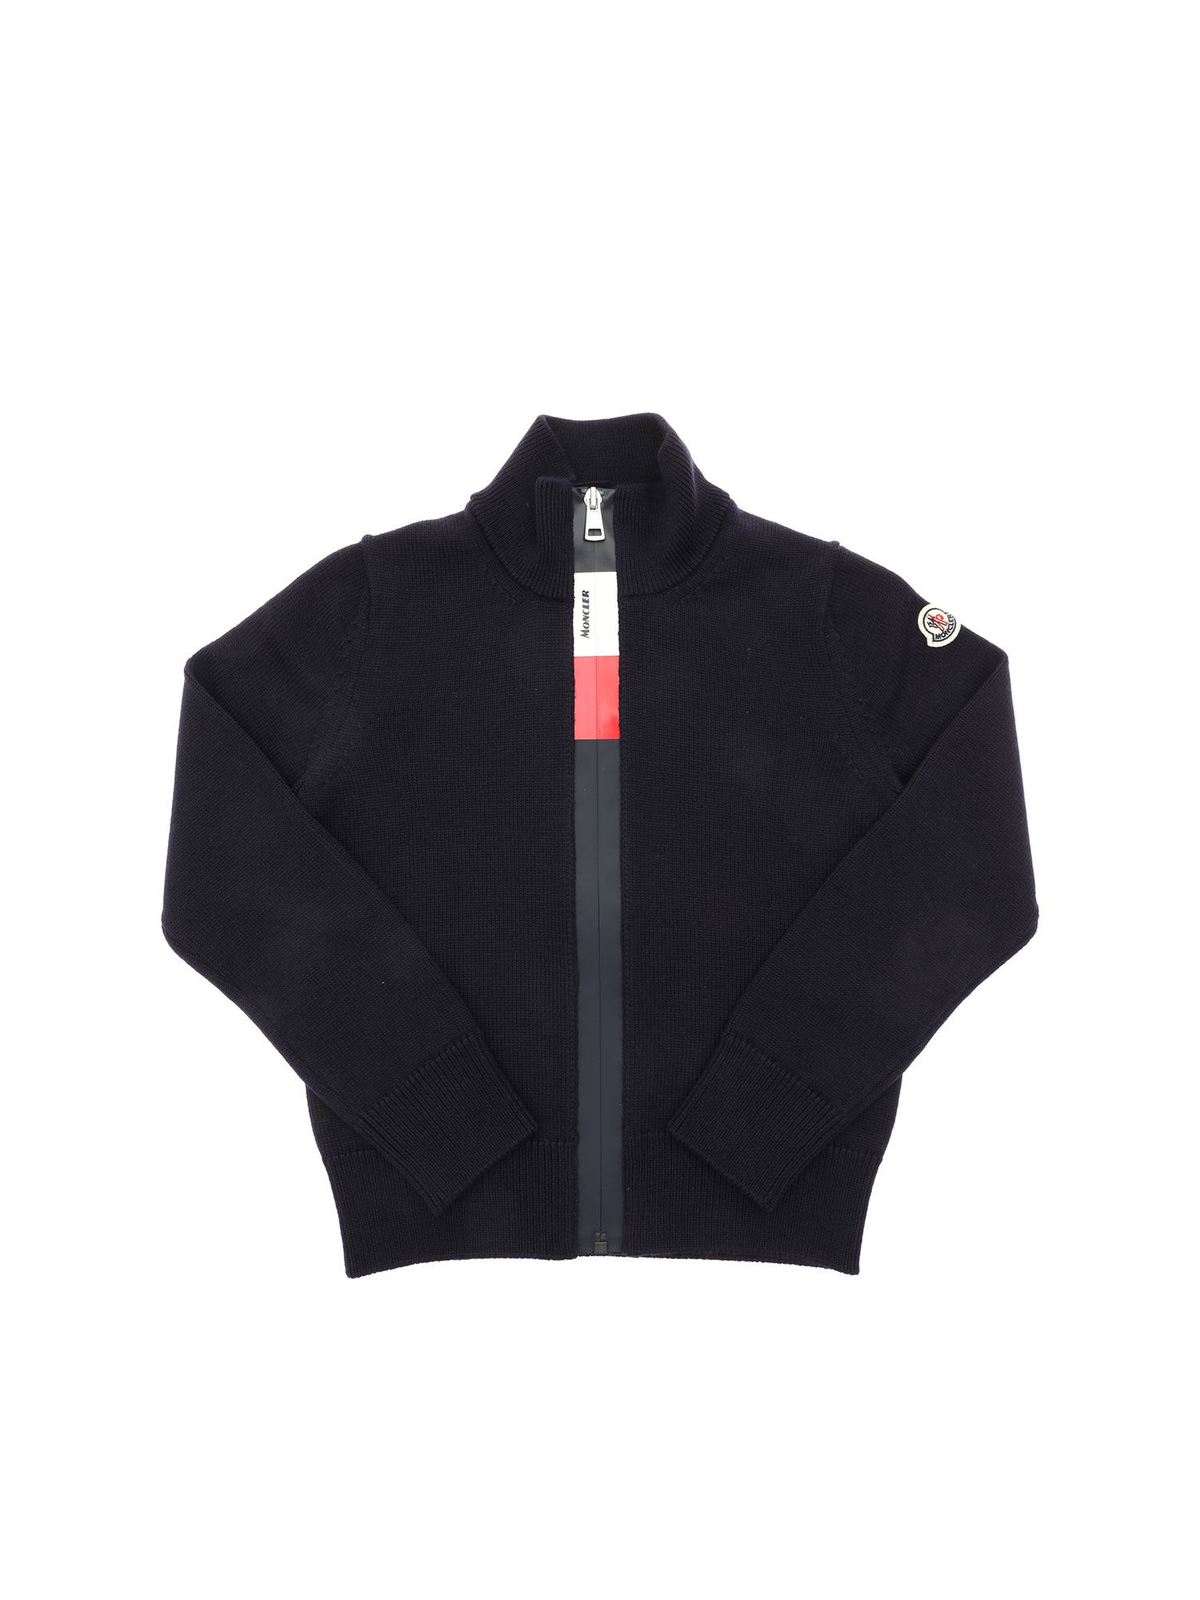 MONCLER JR LOGO PATCH CARDIGAN IN BLUE